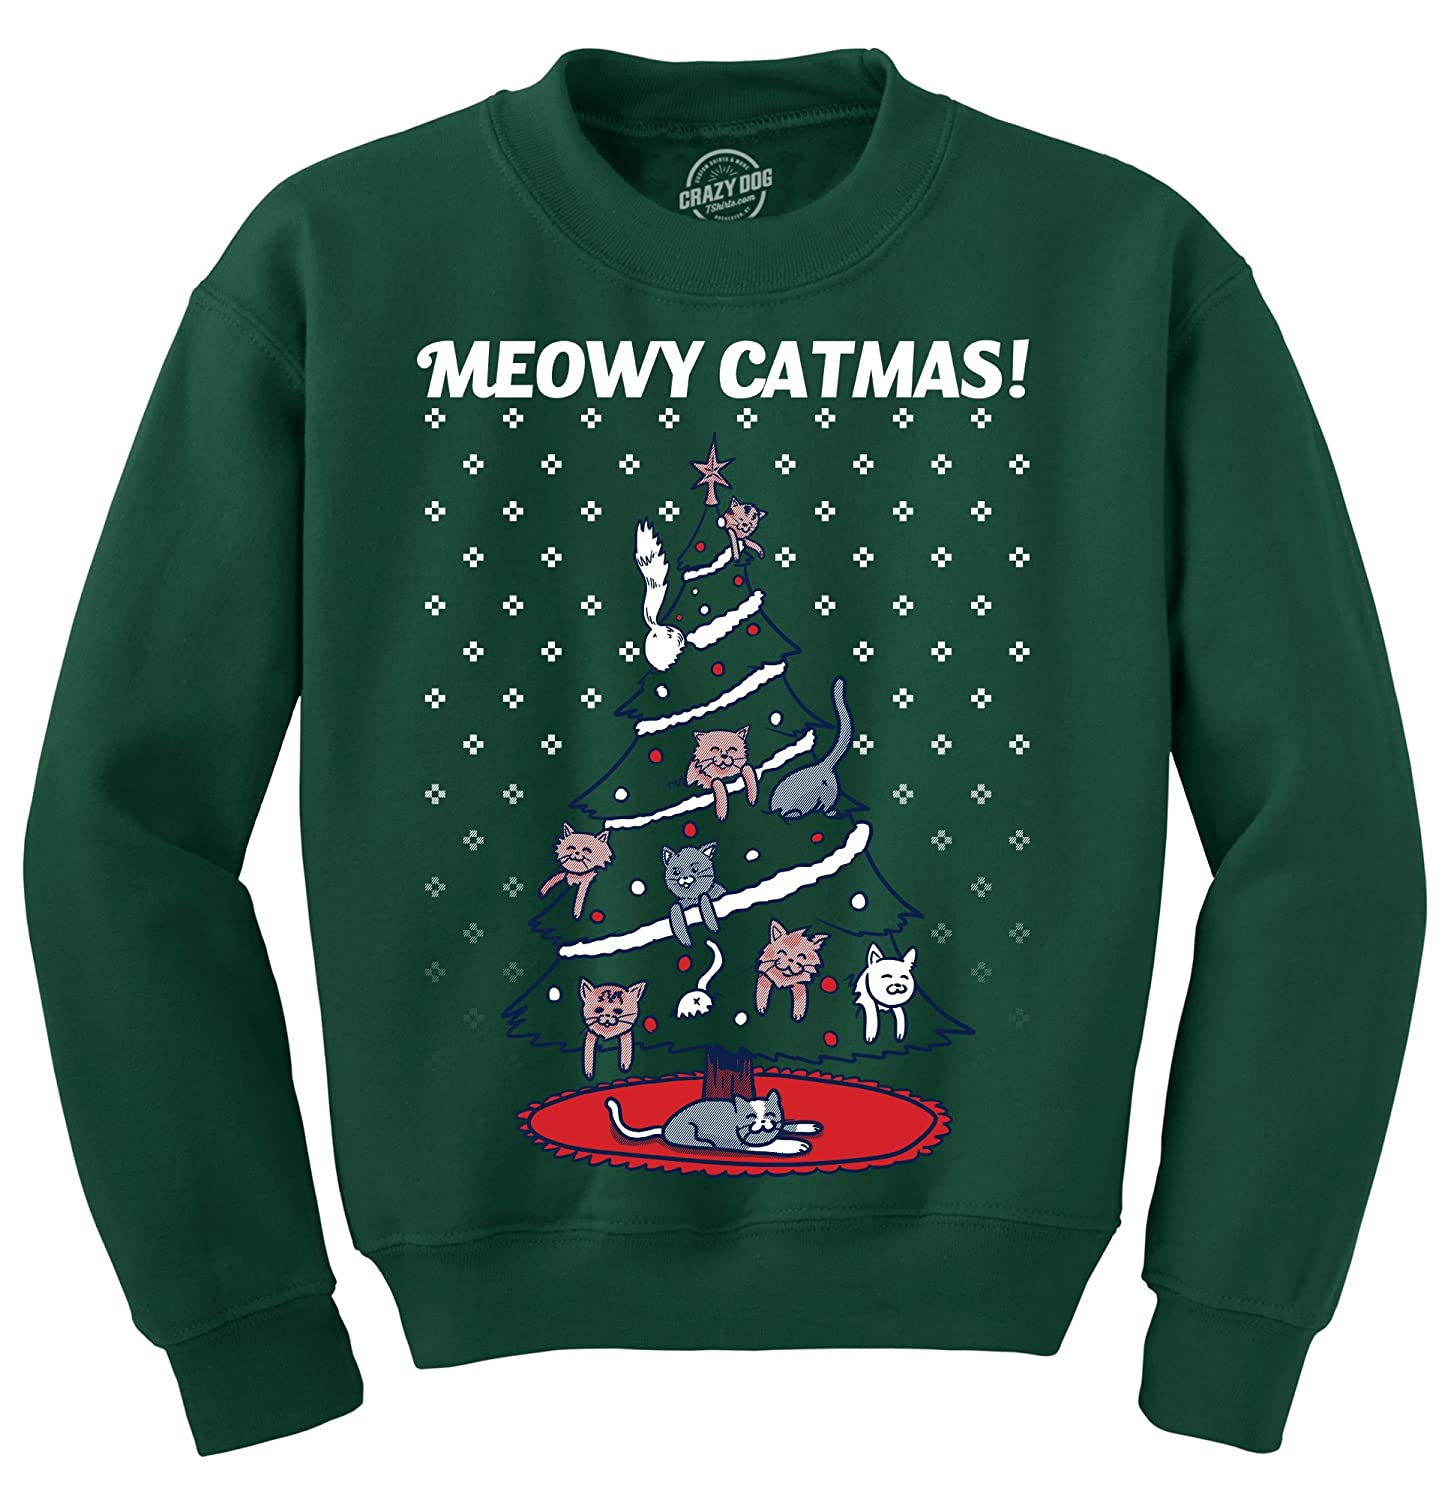 Crazy Dog Tshirts - Meowy Catmas Funny Christmas Holiday Crew Neck Sweatshirt - 017MeowyCatmasCREW